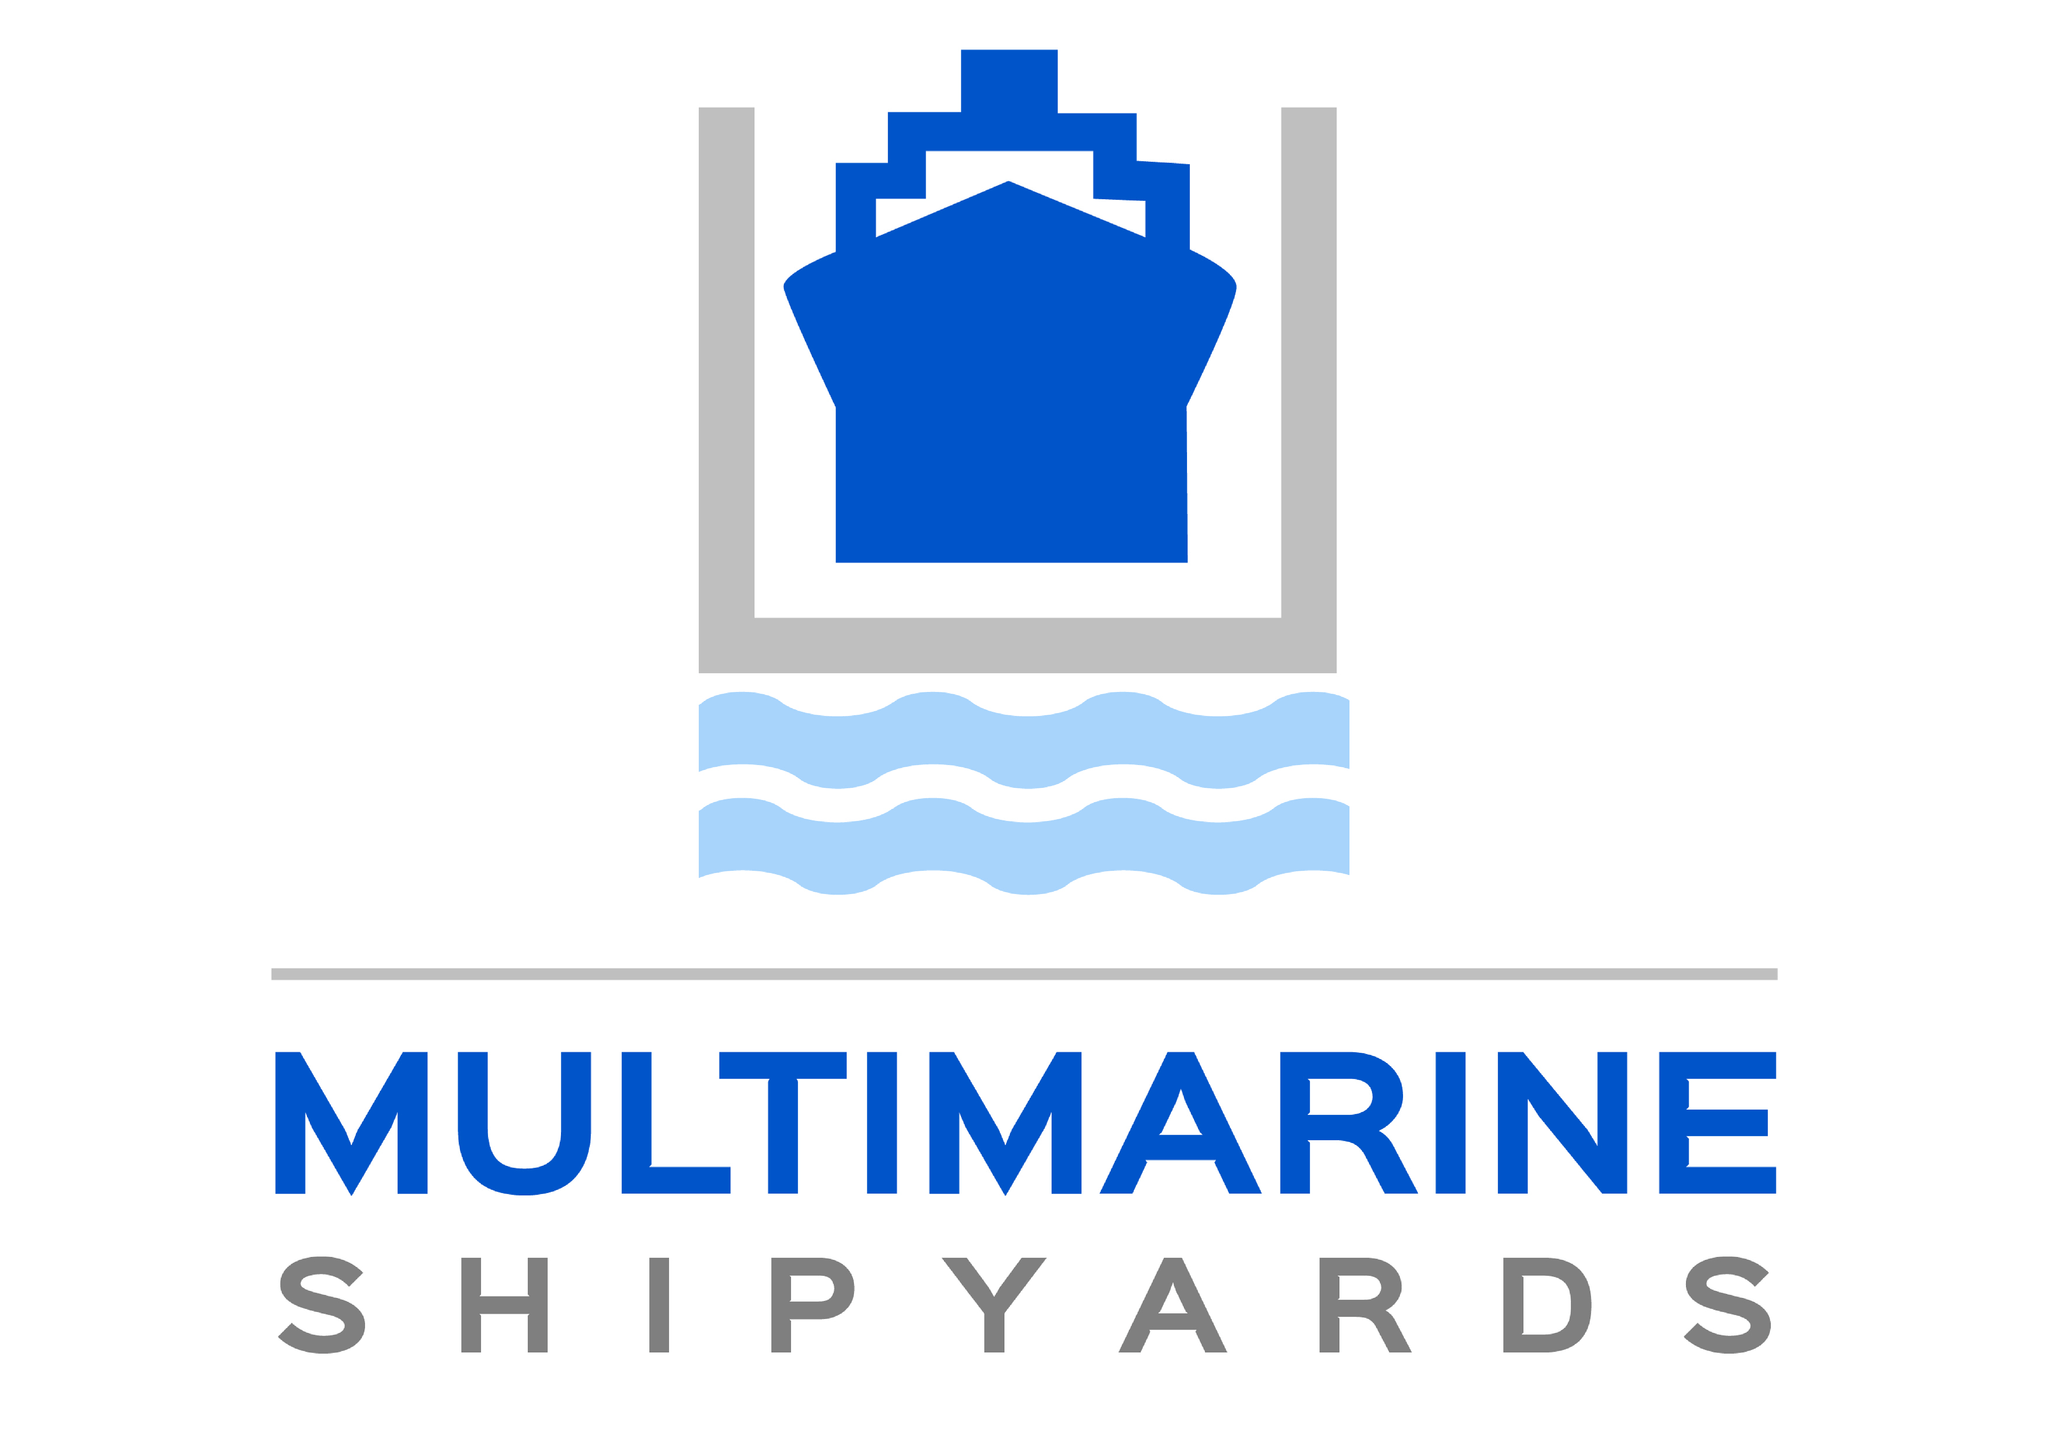 Multimarine Shipyards Ltd.